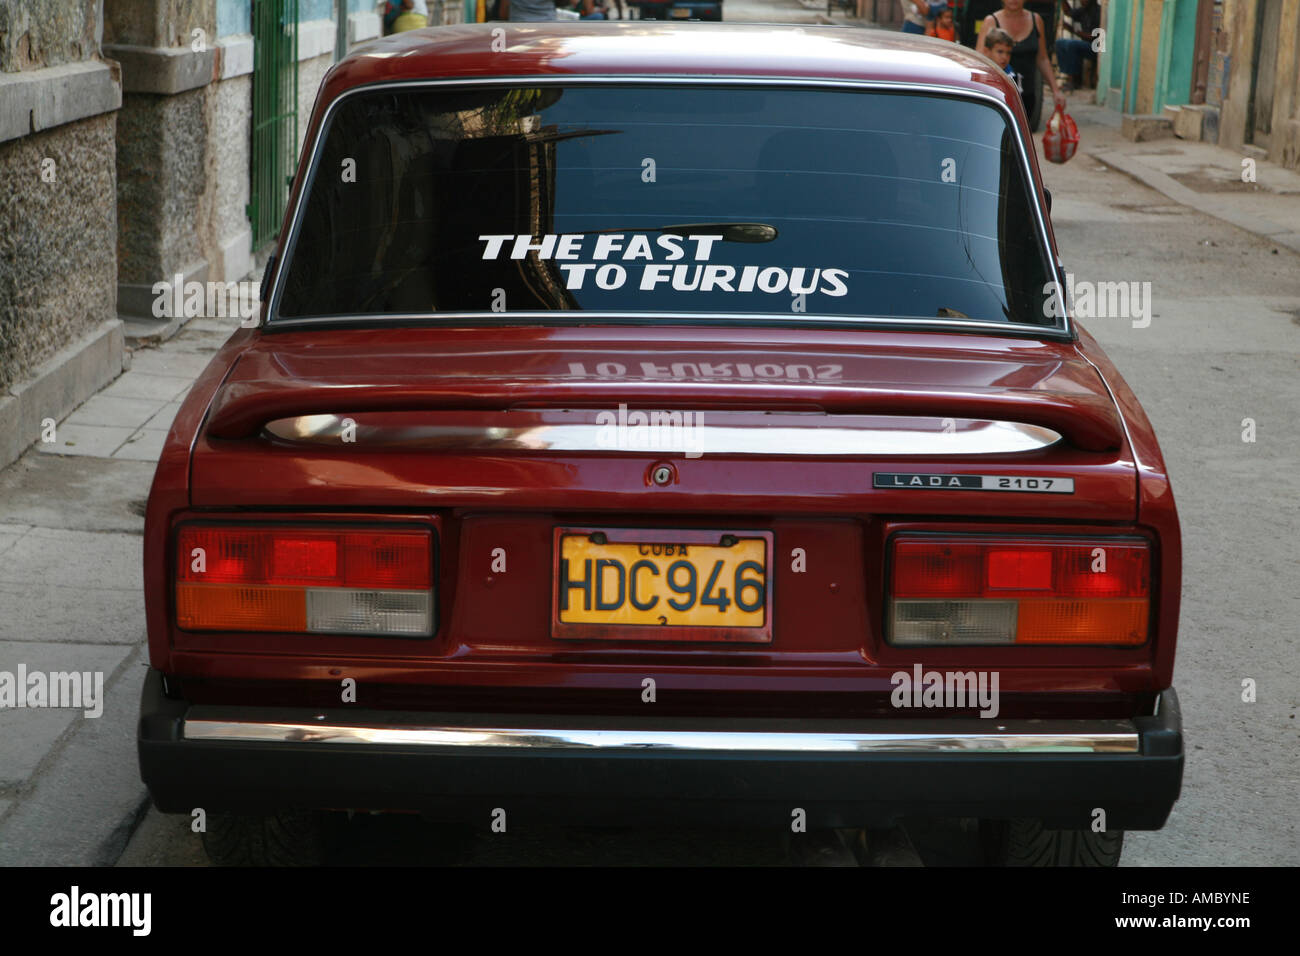 Havana Cuba a Lada the fast to furious in the street - Stock Image